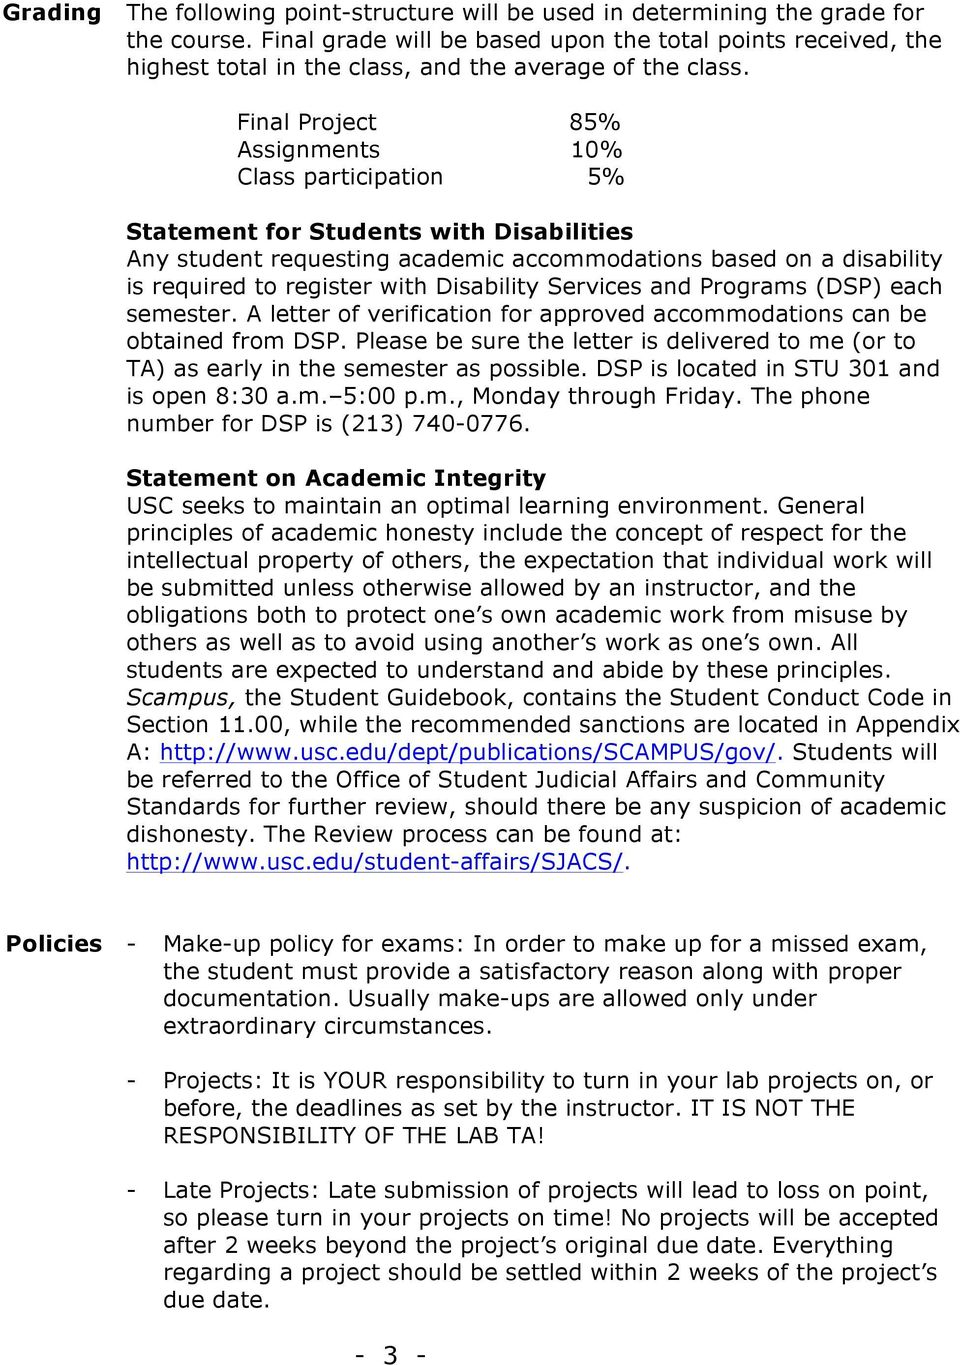 Final Project 85% Assignments 10% Class participation 5% Statement for Students with Disabilities Any student requesting academic accommodations based on a disability is required to register with